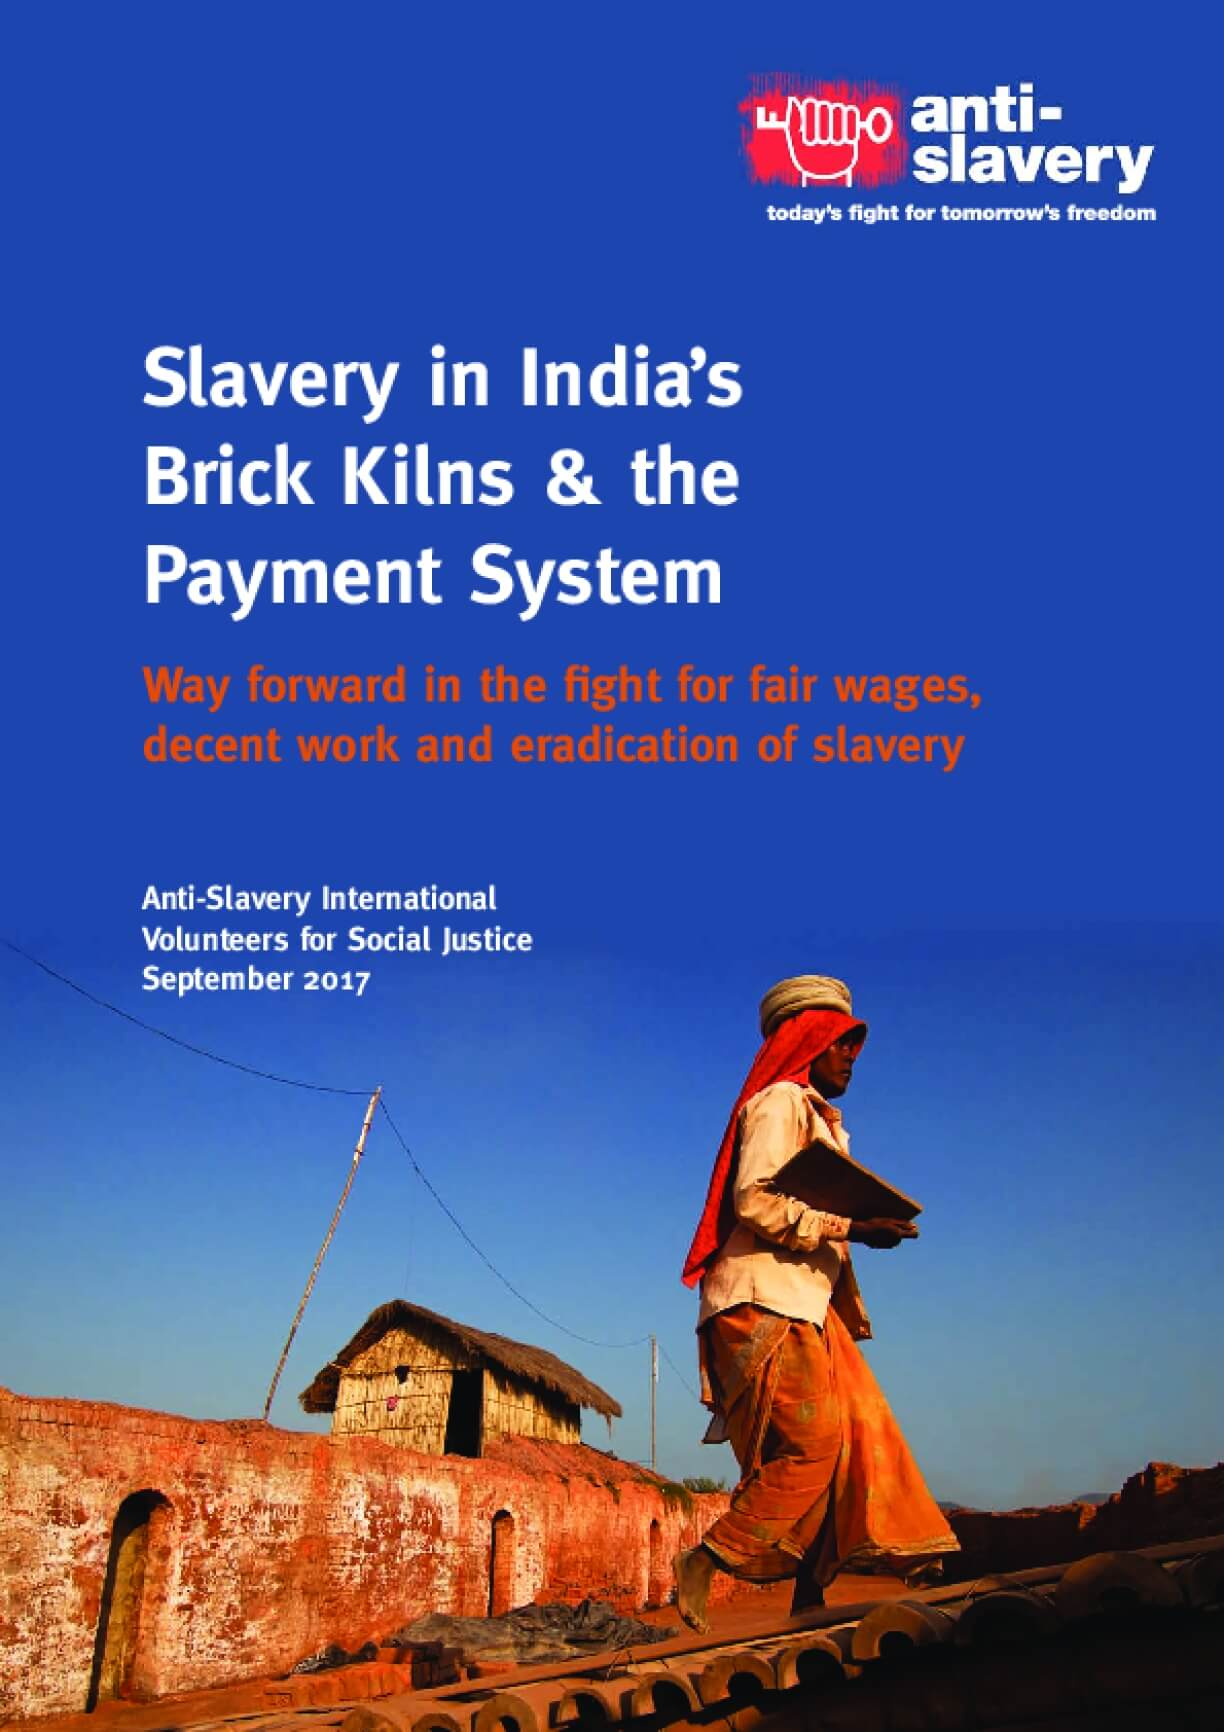 Slavery in India's Brick Kilns & the Payment System